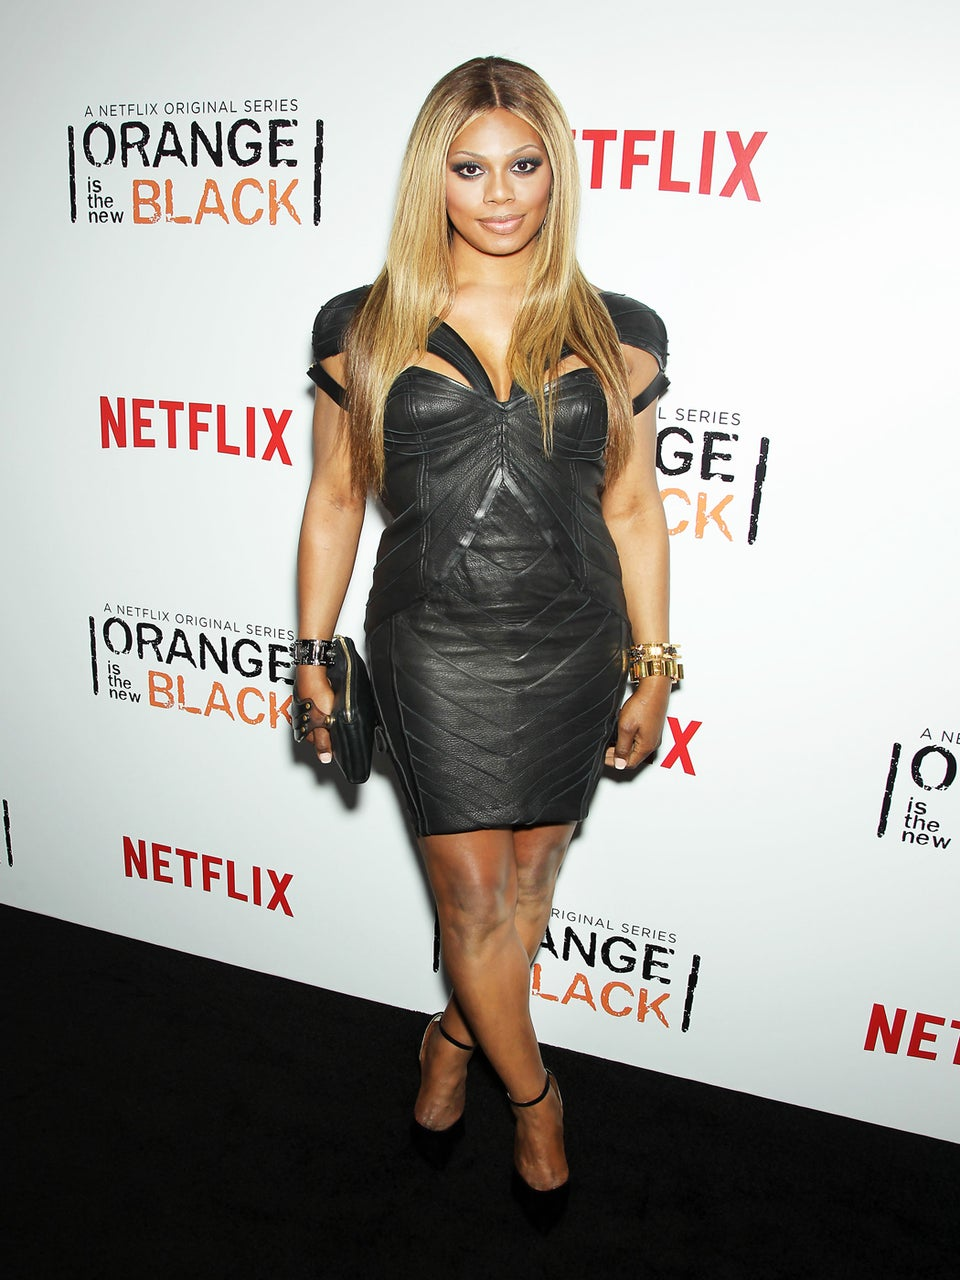 Laverne Cox's Emmy Dream is Closer than Ever for Her 'Orange Is the New Black' Role